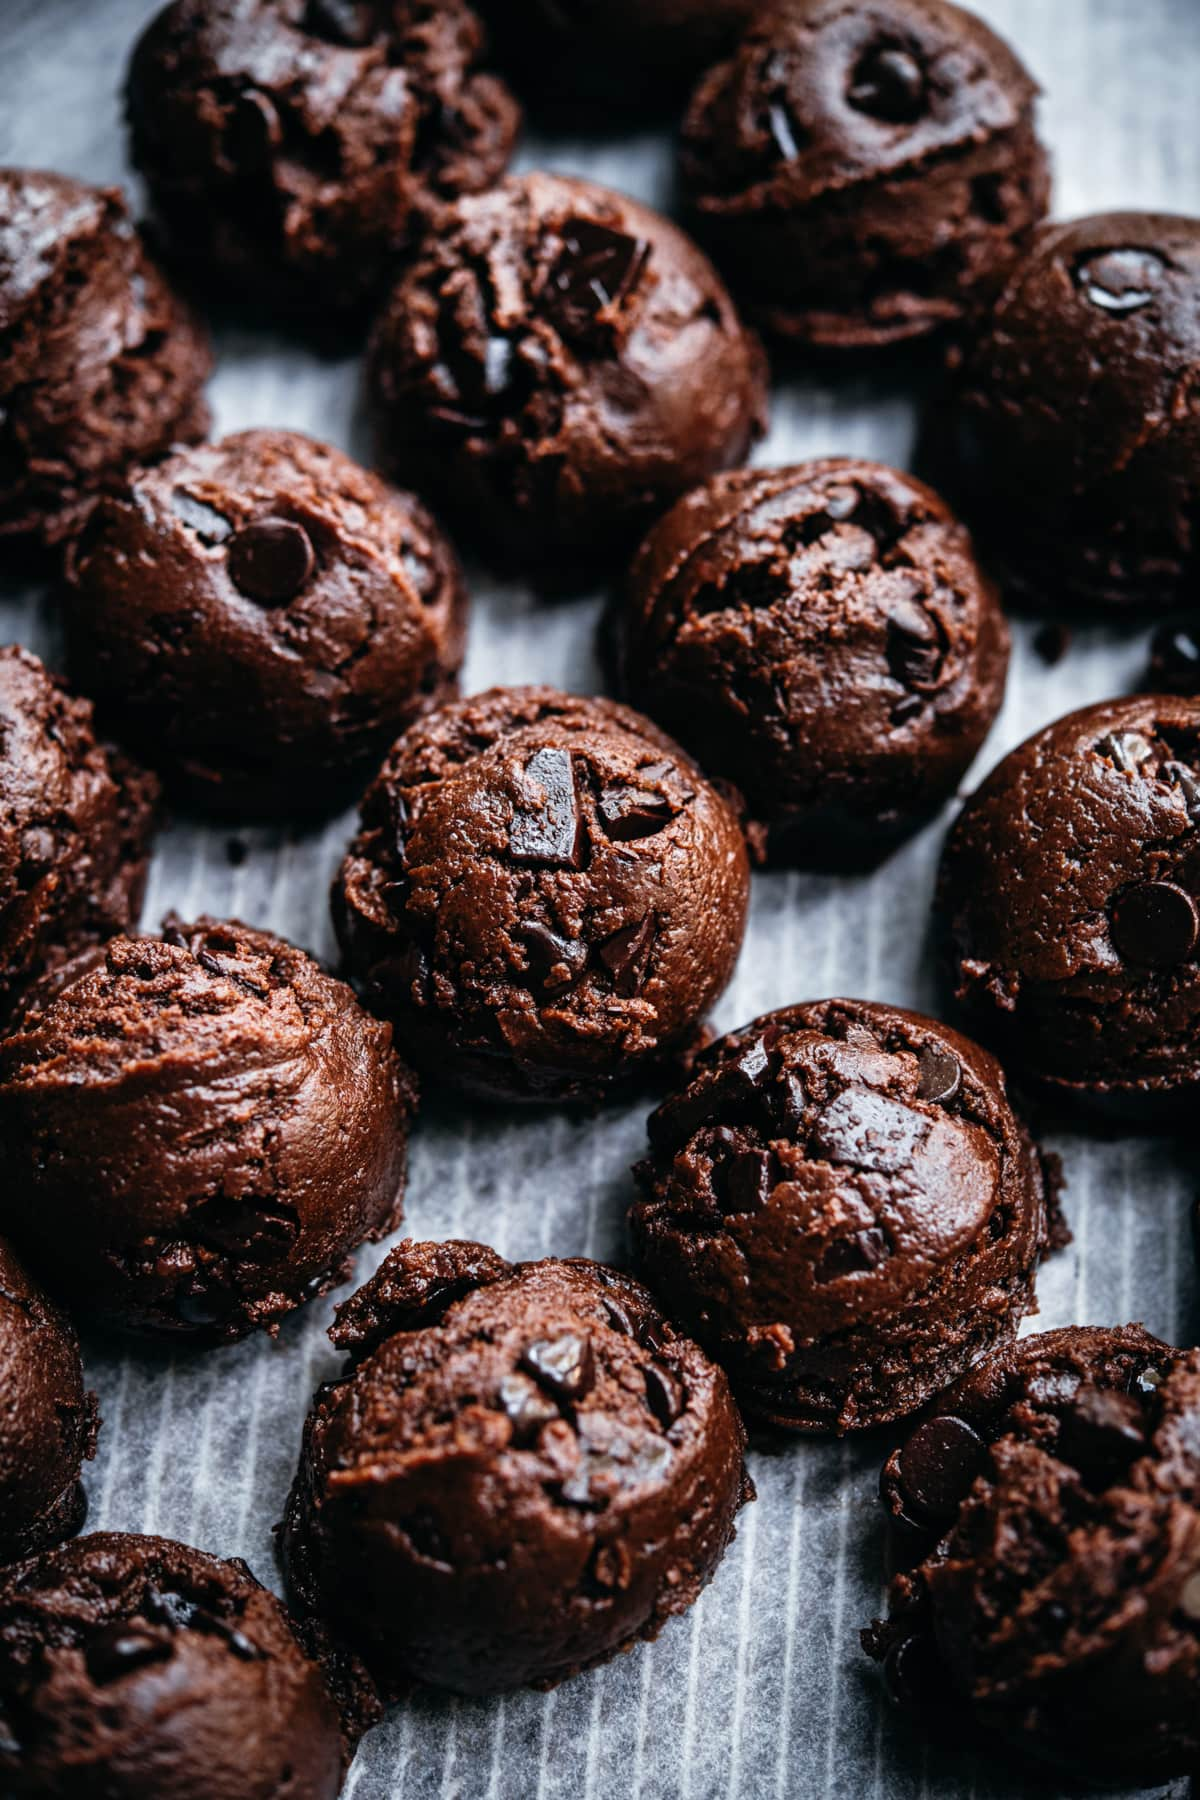 side view of chocolate cookie dough balls on parchment paper.